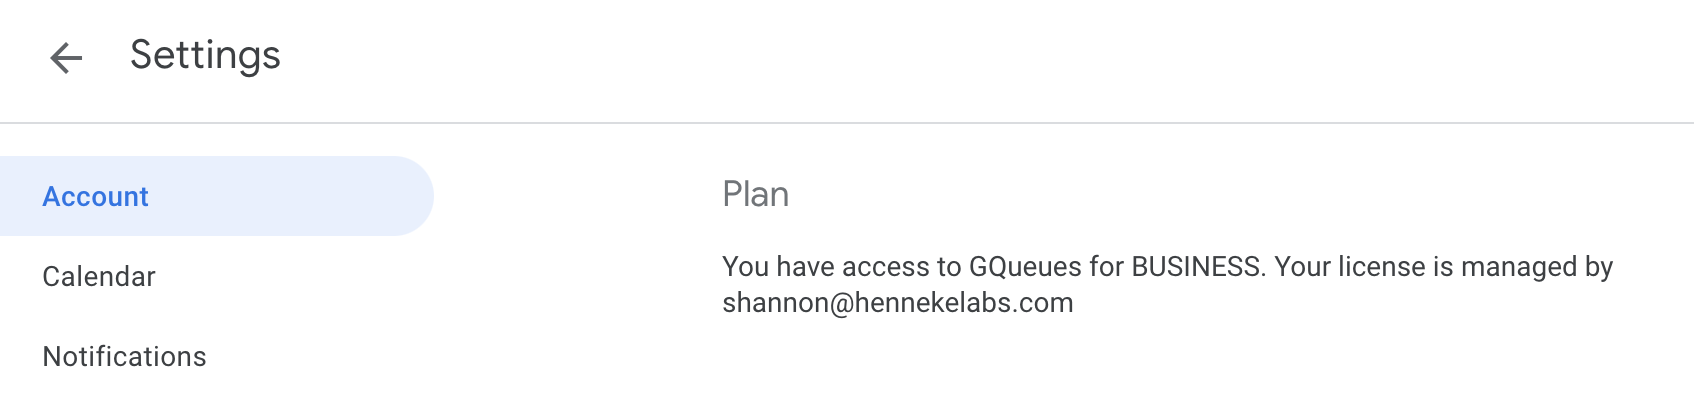 Account tab of GQueues Settings with GQueues for BUSINESS Plan information